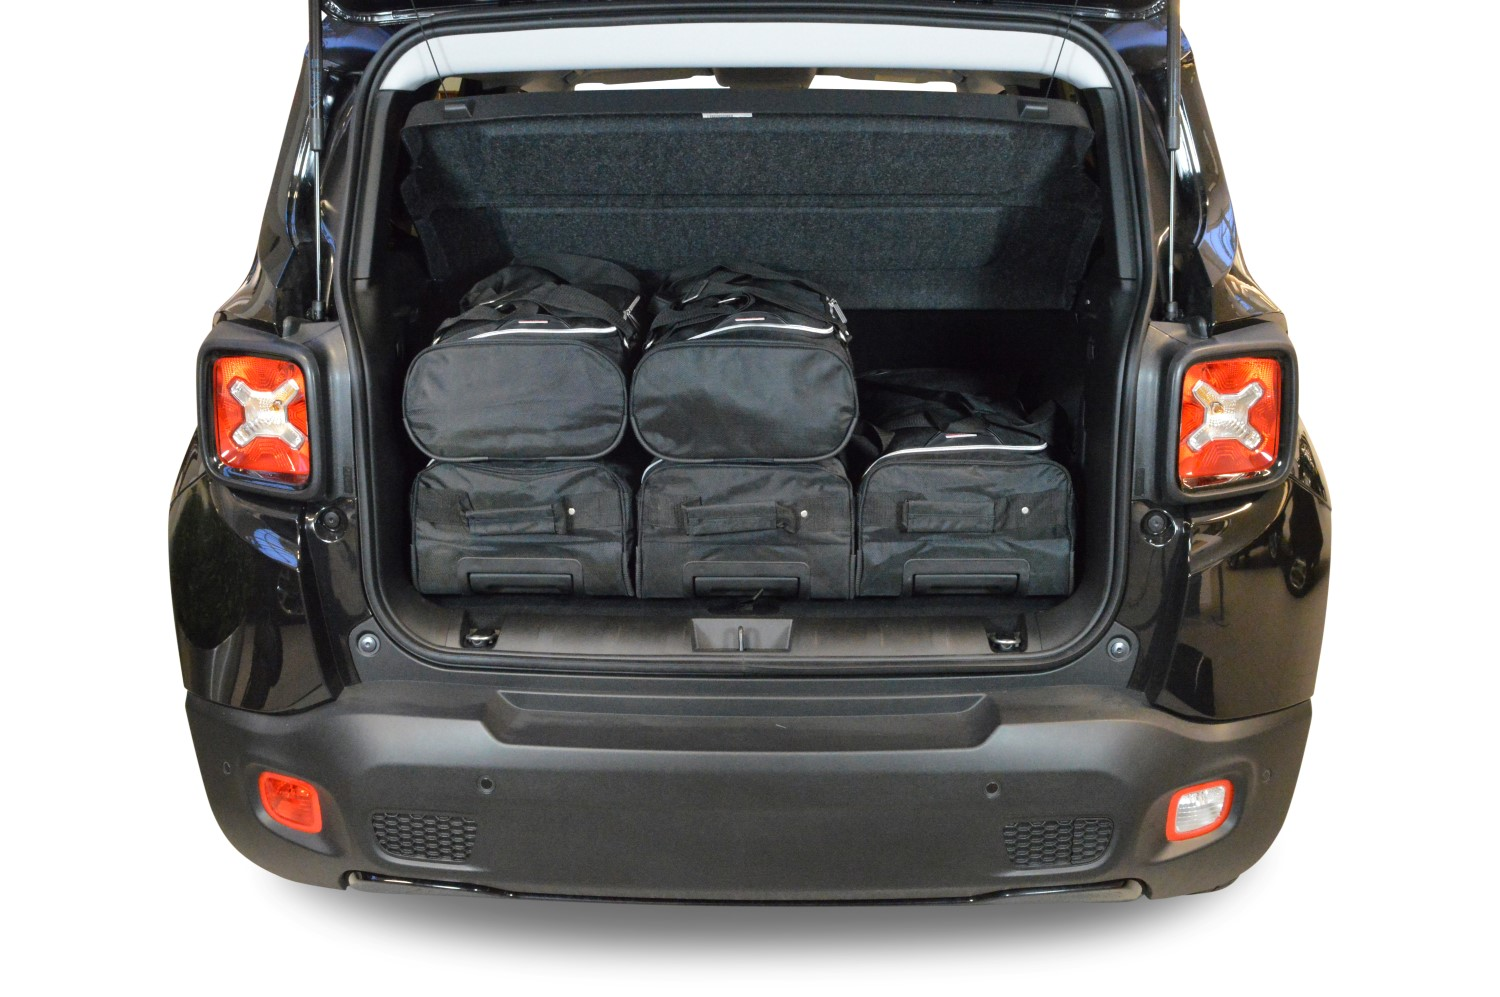 renegade 2014 heute jeep renegade 2014 heute car bags. Black Bedroom Furniture Sets. Home Design Ideas